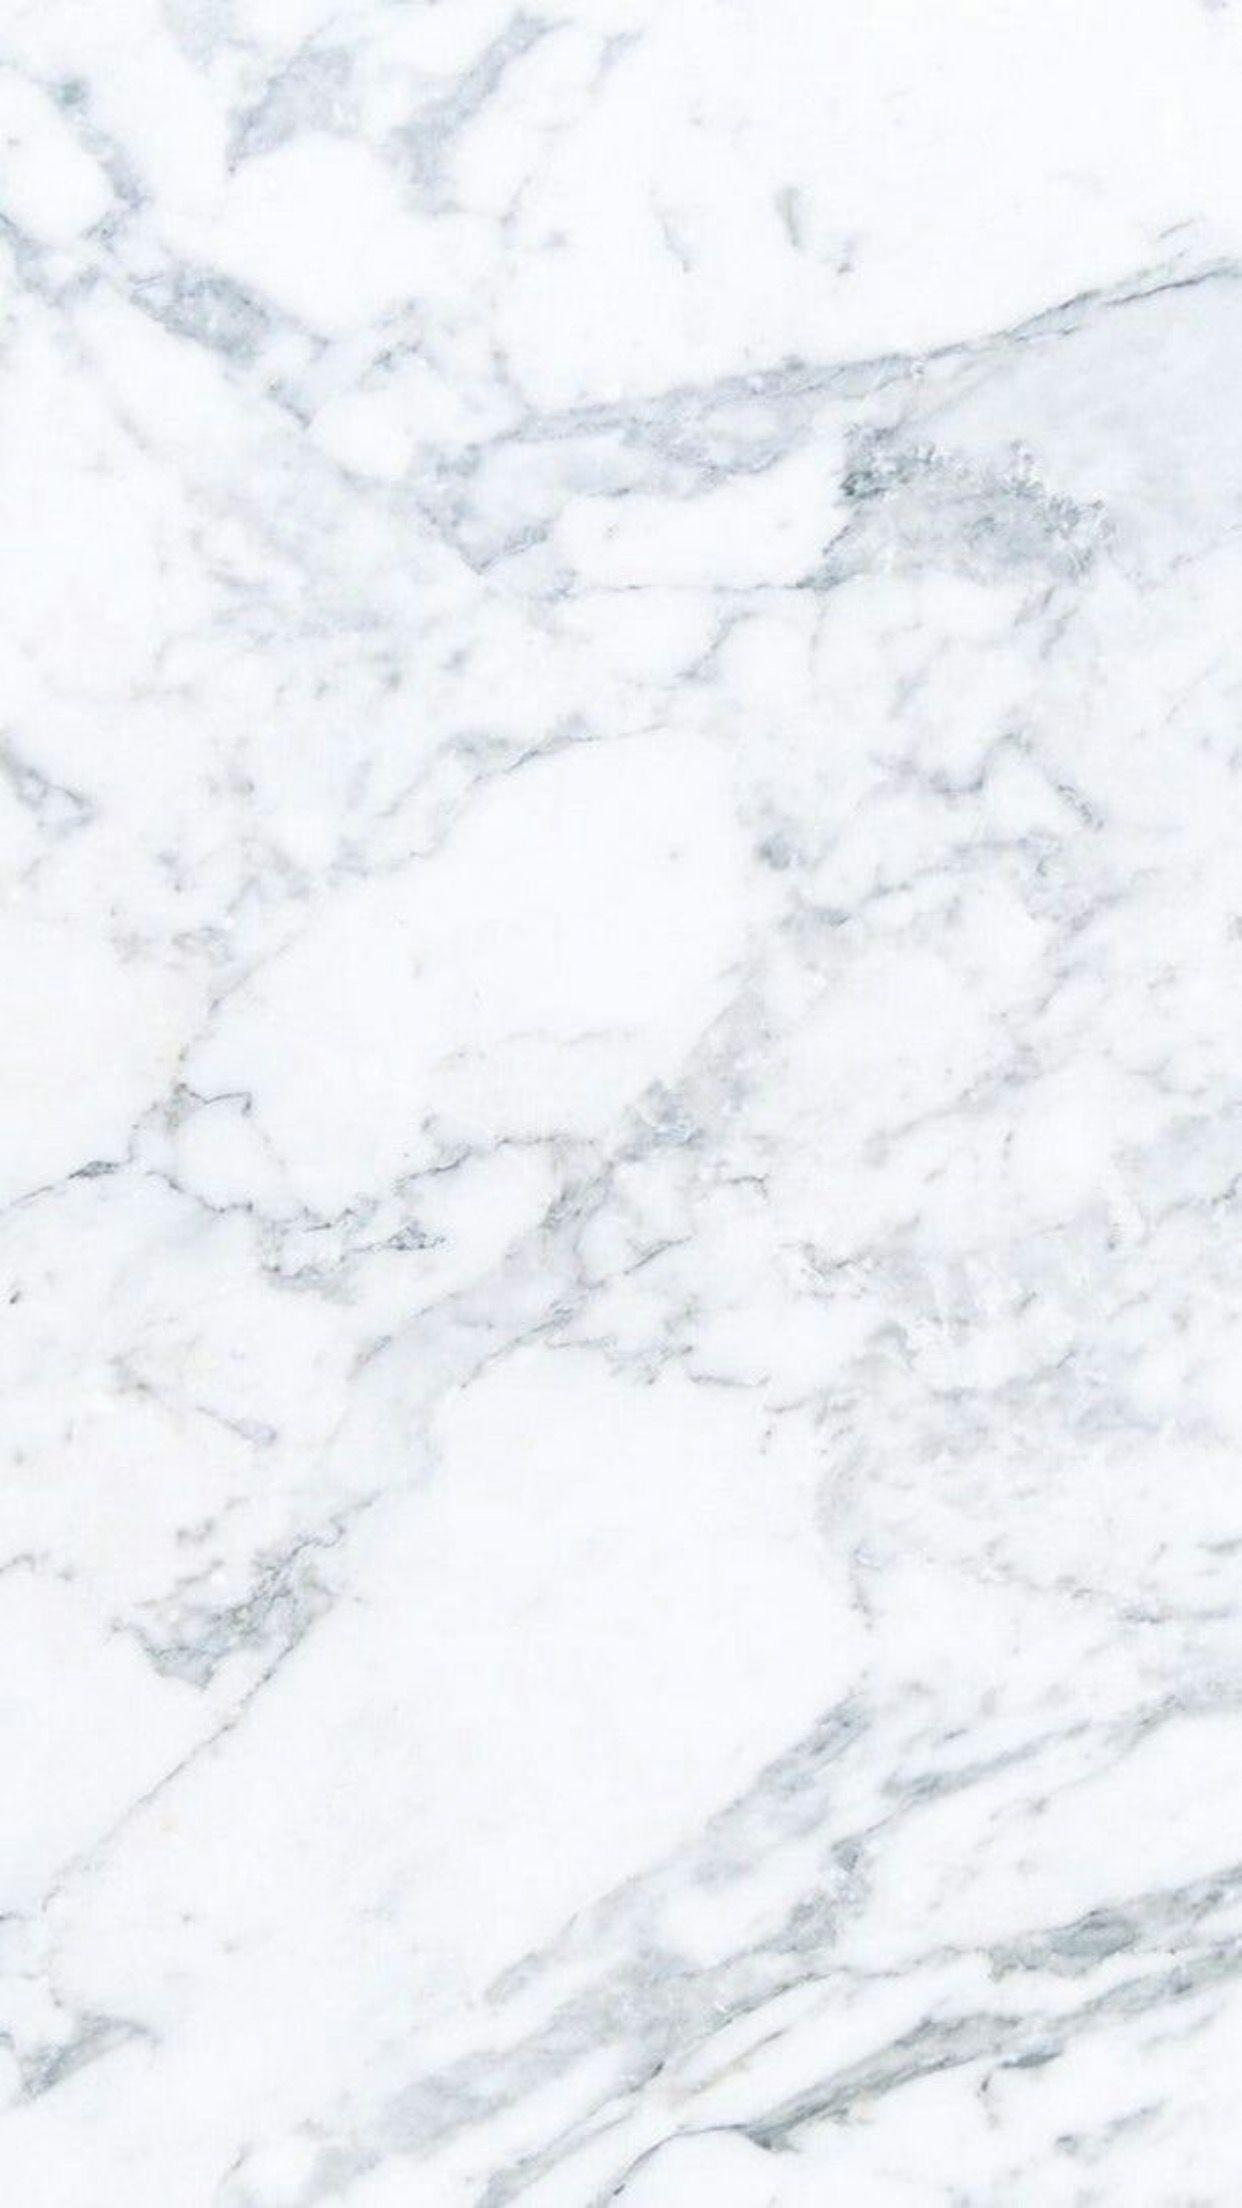 Marble Computer Background : marble, computer, background, White, Marble, Wallpapers, Wallpaper